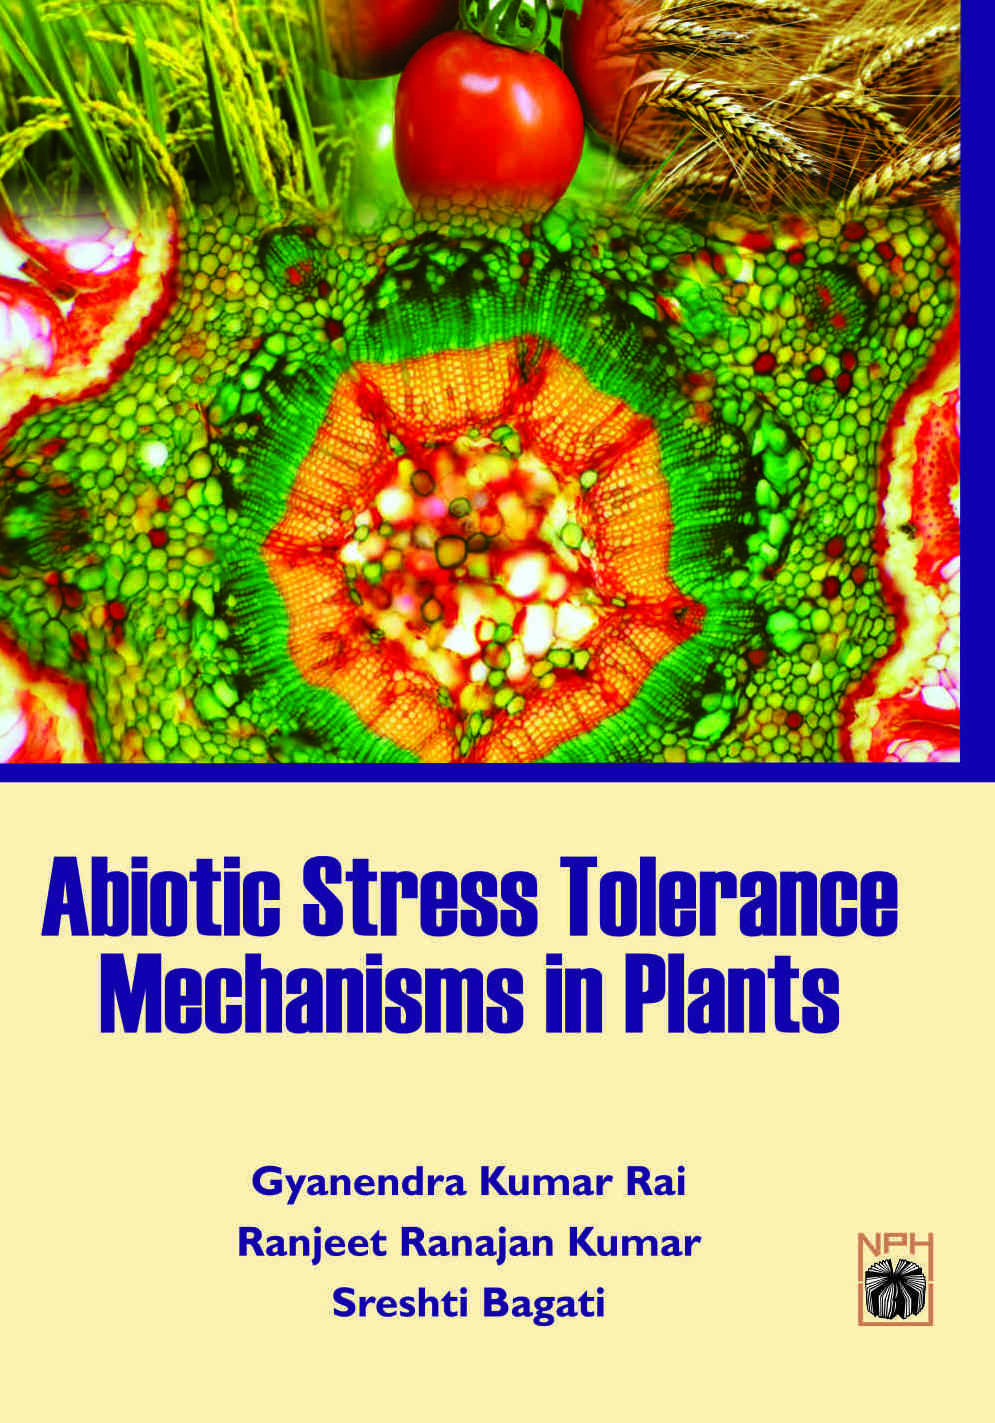 Abiotic Stress Tolerance Mechanisms in Plants